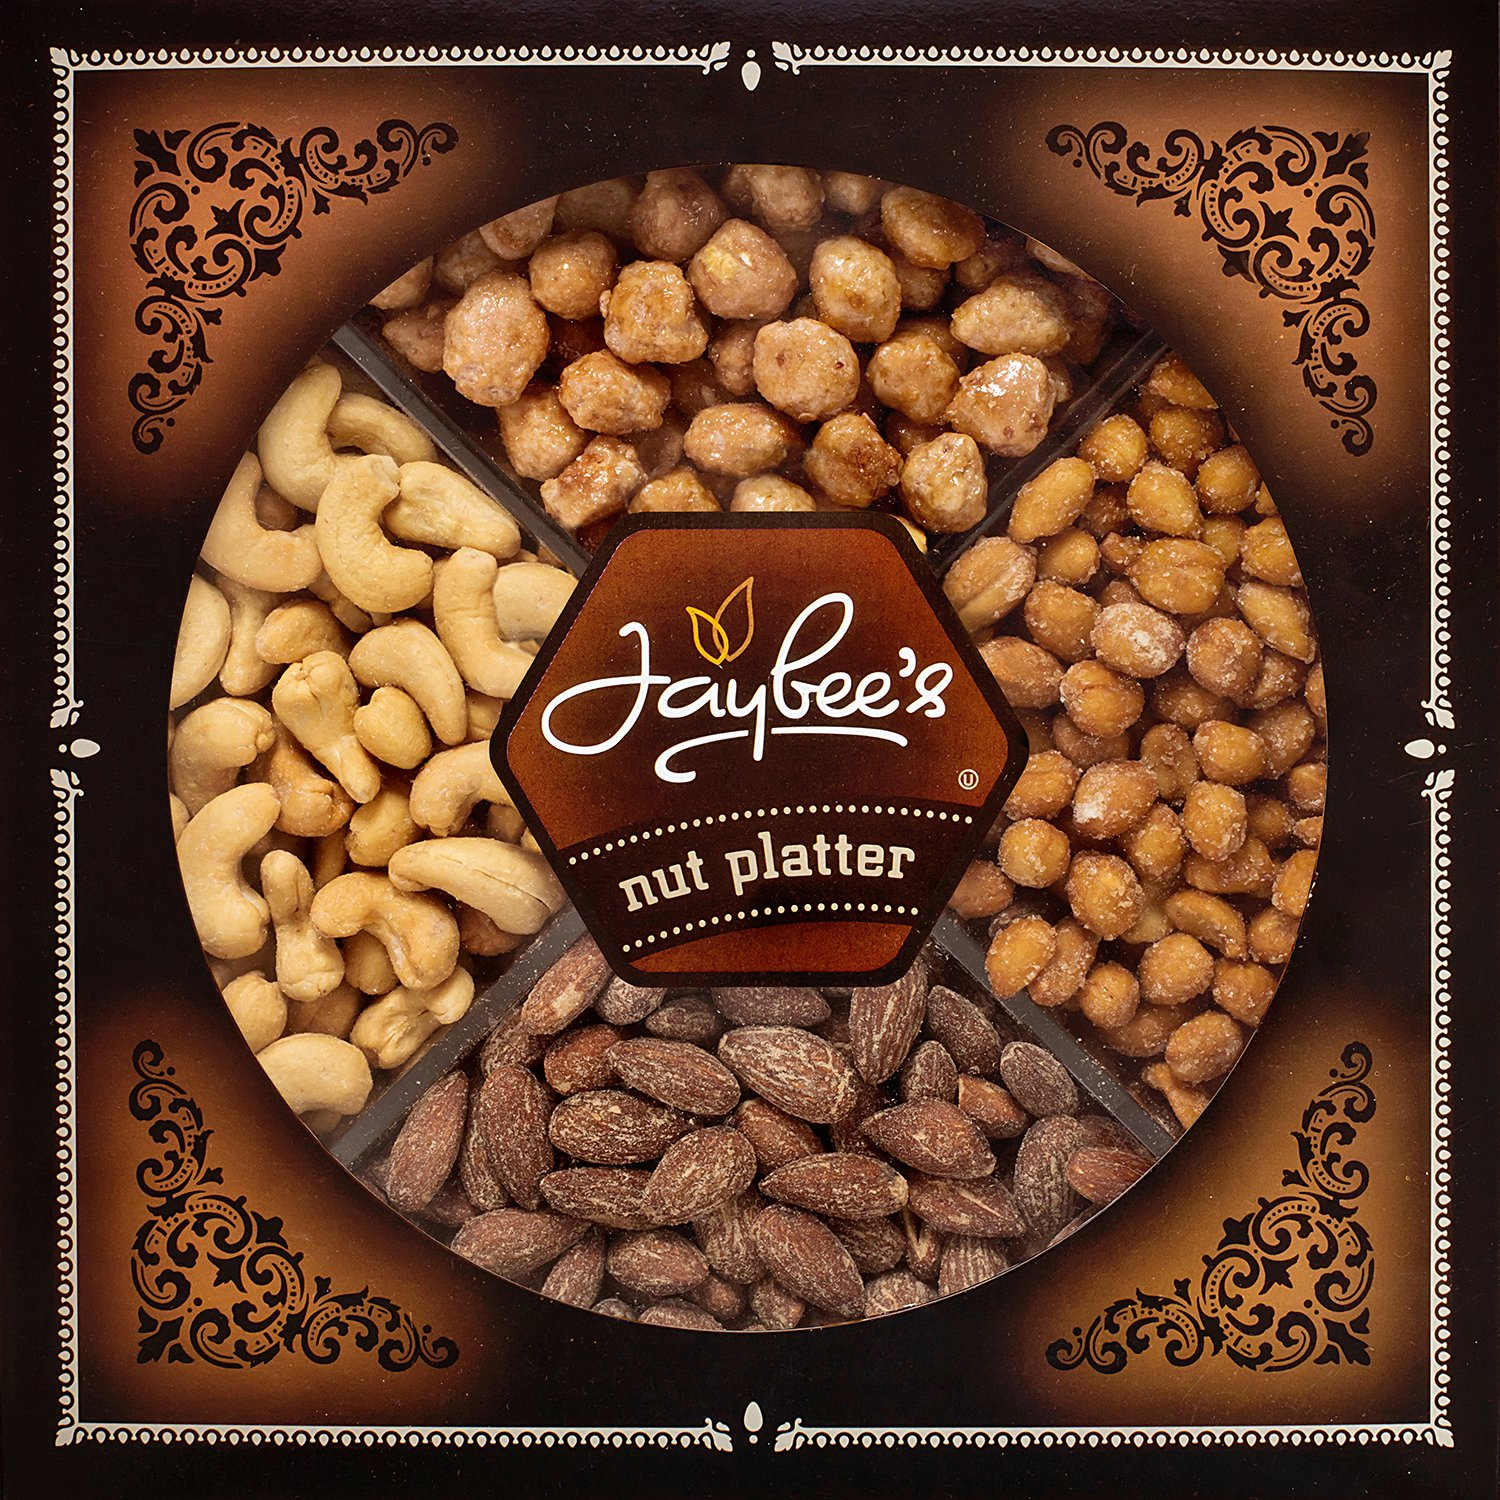 Jaybee's Nuts Gift Tray - Great Holiday, Corporate, Birthday Gift, or as Everyday Healthy Snack - Cashews, Smoked Almonds, Toffee & Honey Roasted Peanuts, Vegetarian Friendly and Kosher by Jaybee's